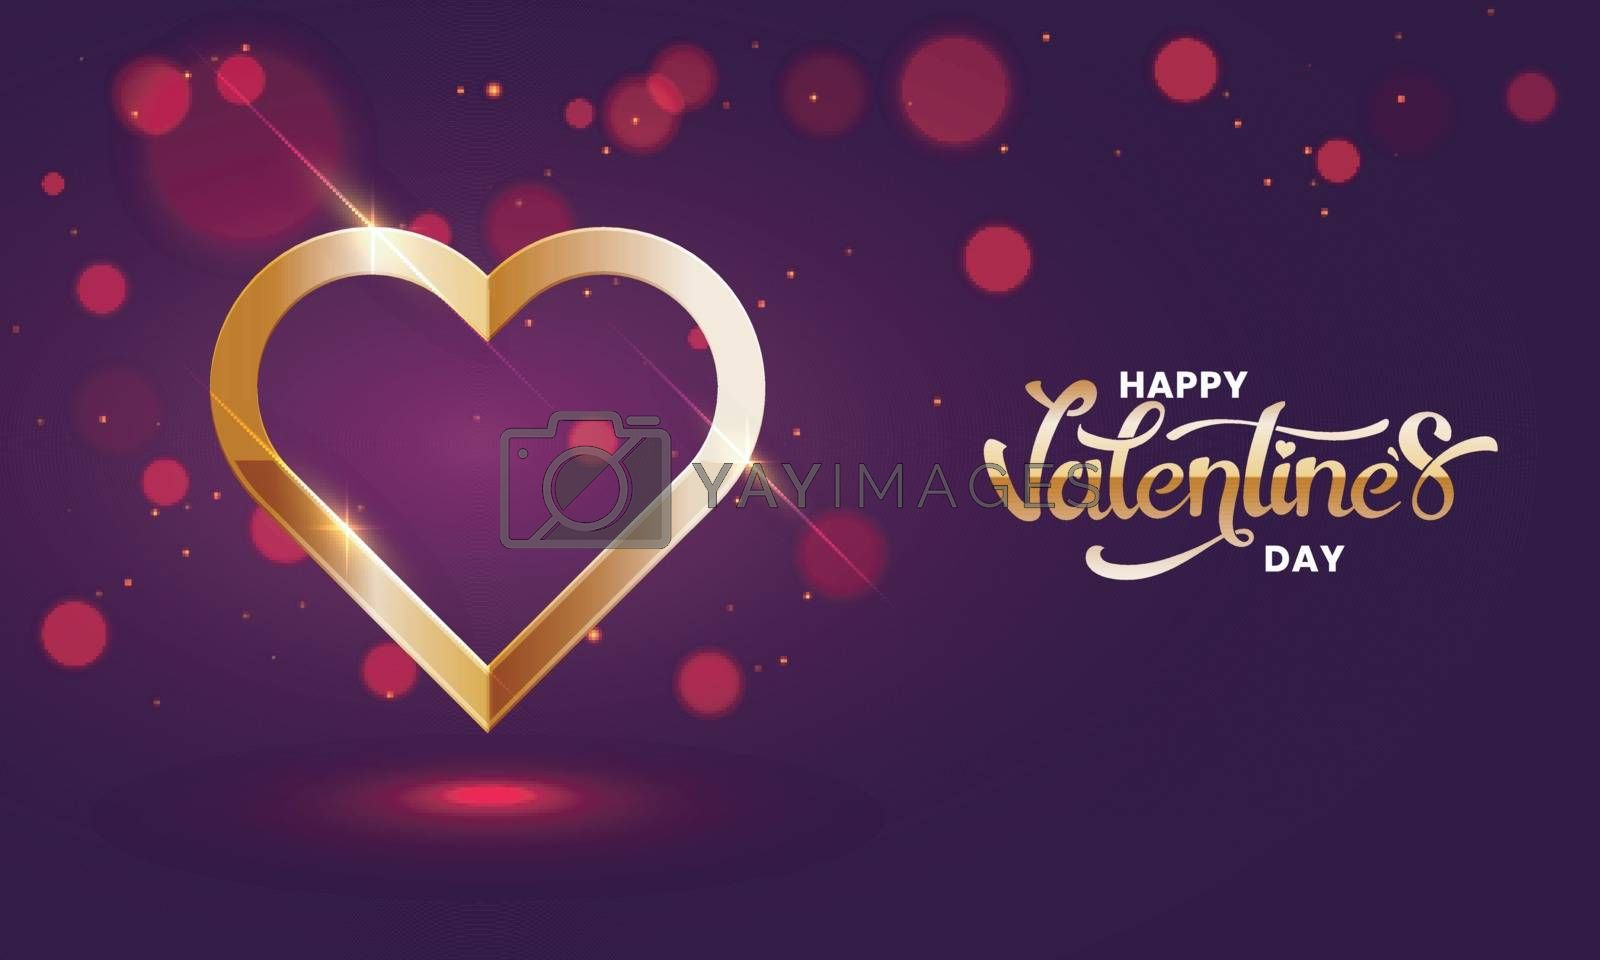 Shiny golden heart shape on purple bokeh background for Valentine's Day celebration greeting card design.